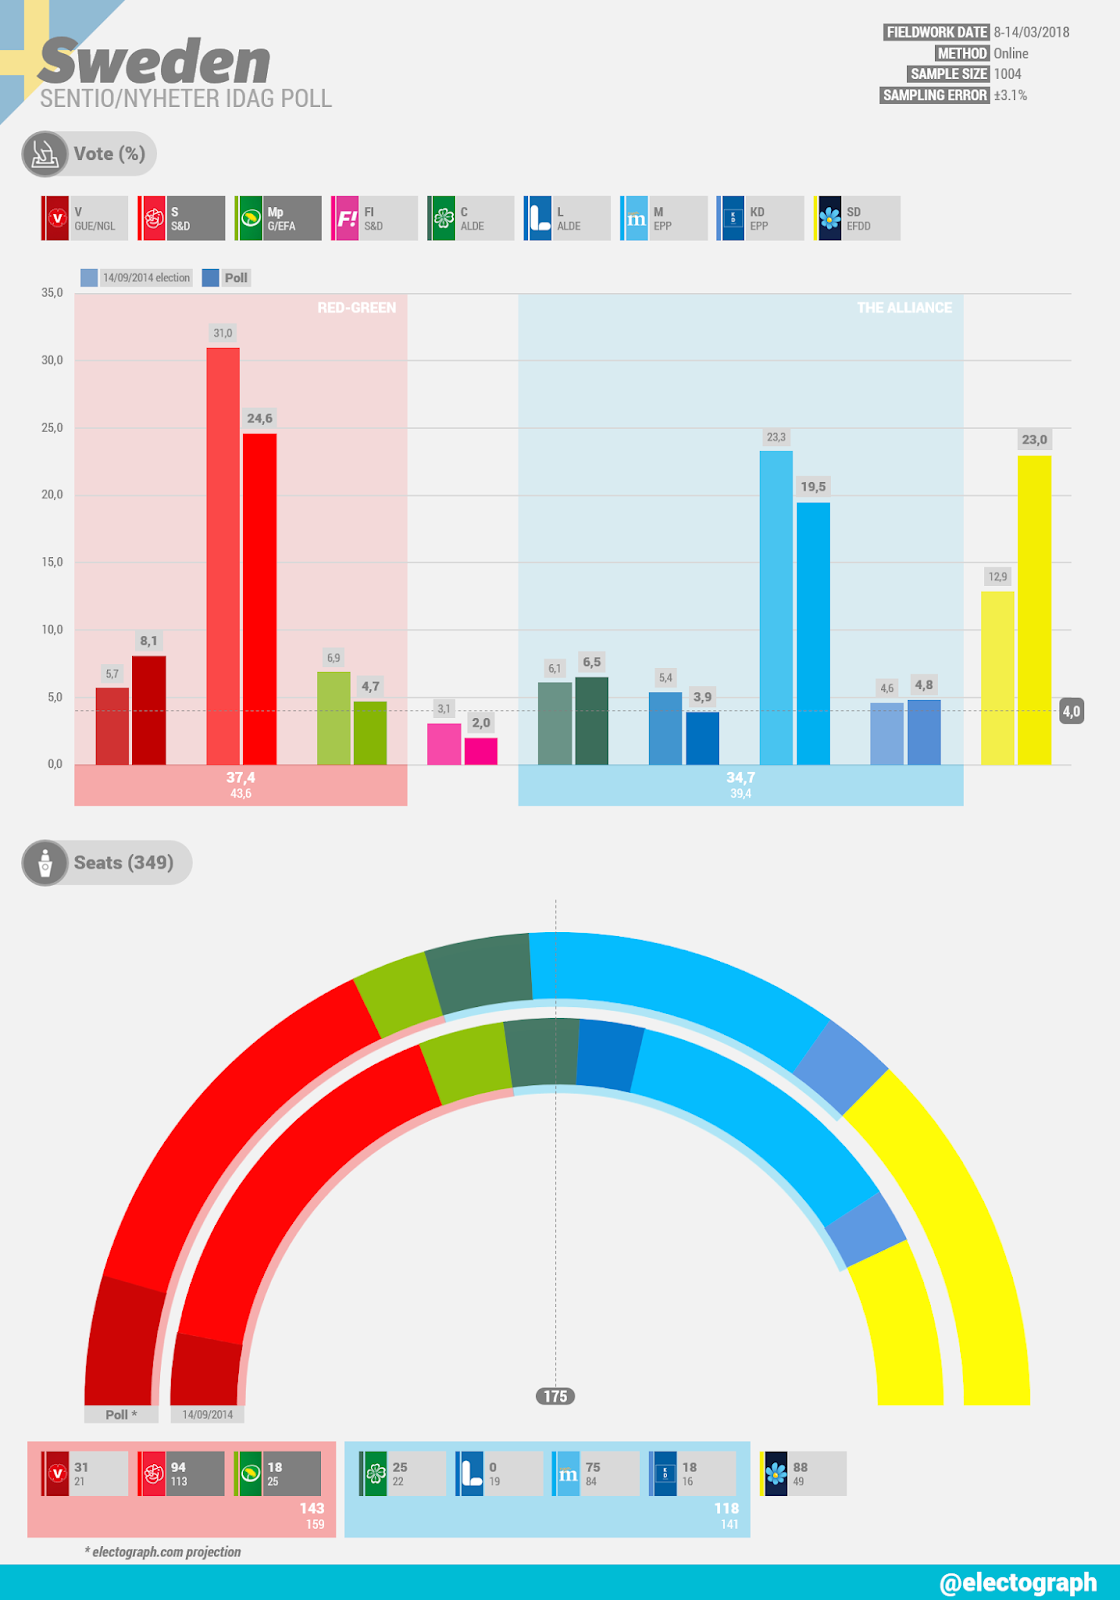 SWEDEN Sentio poll chart for Nyheter Idag, March 2018